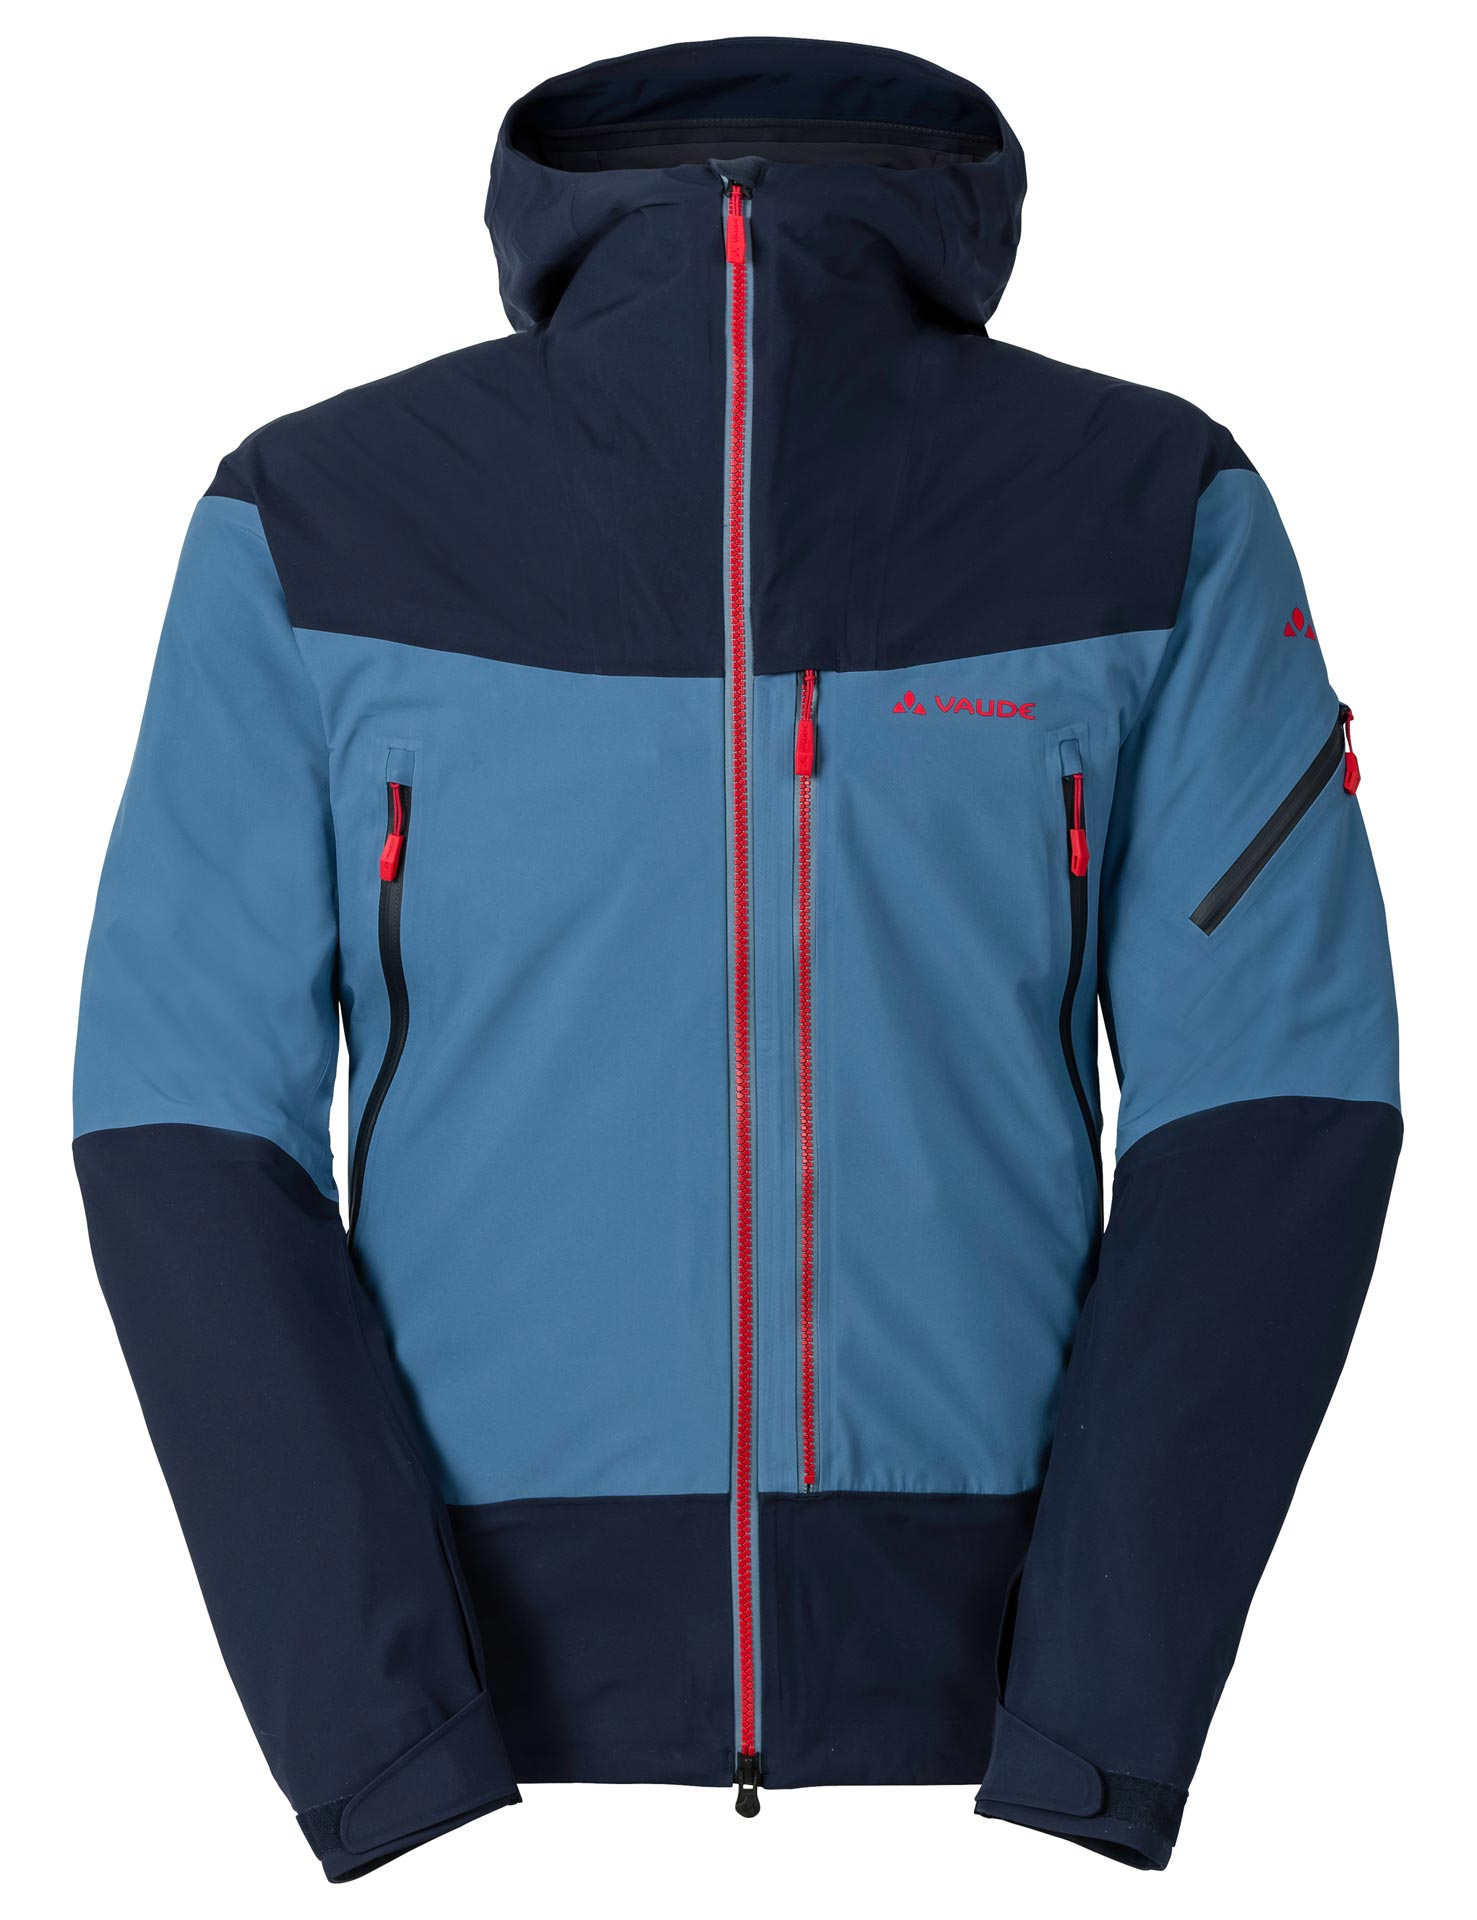 Vaude: Golliat 3L Jacket